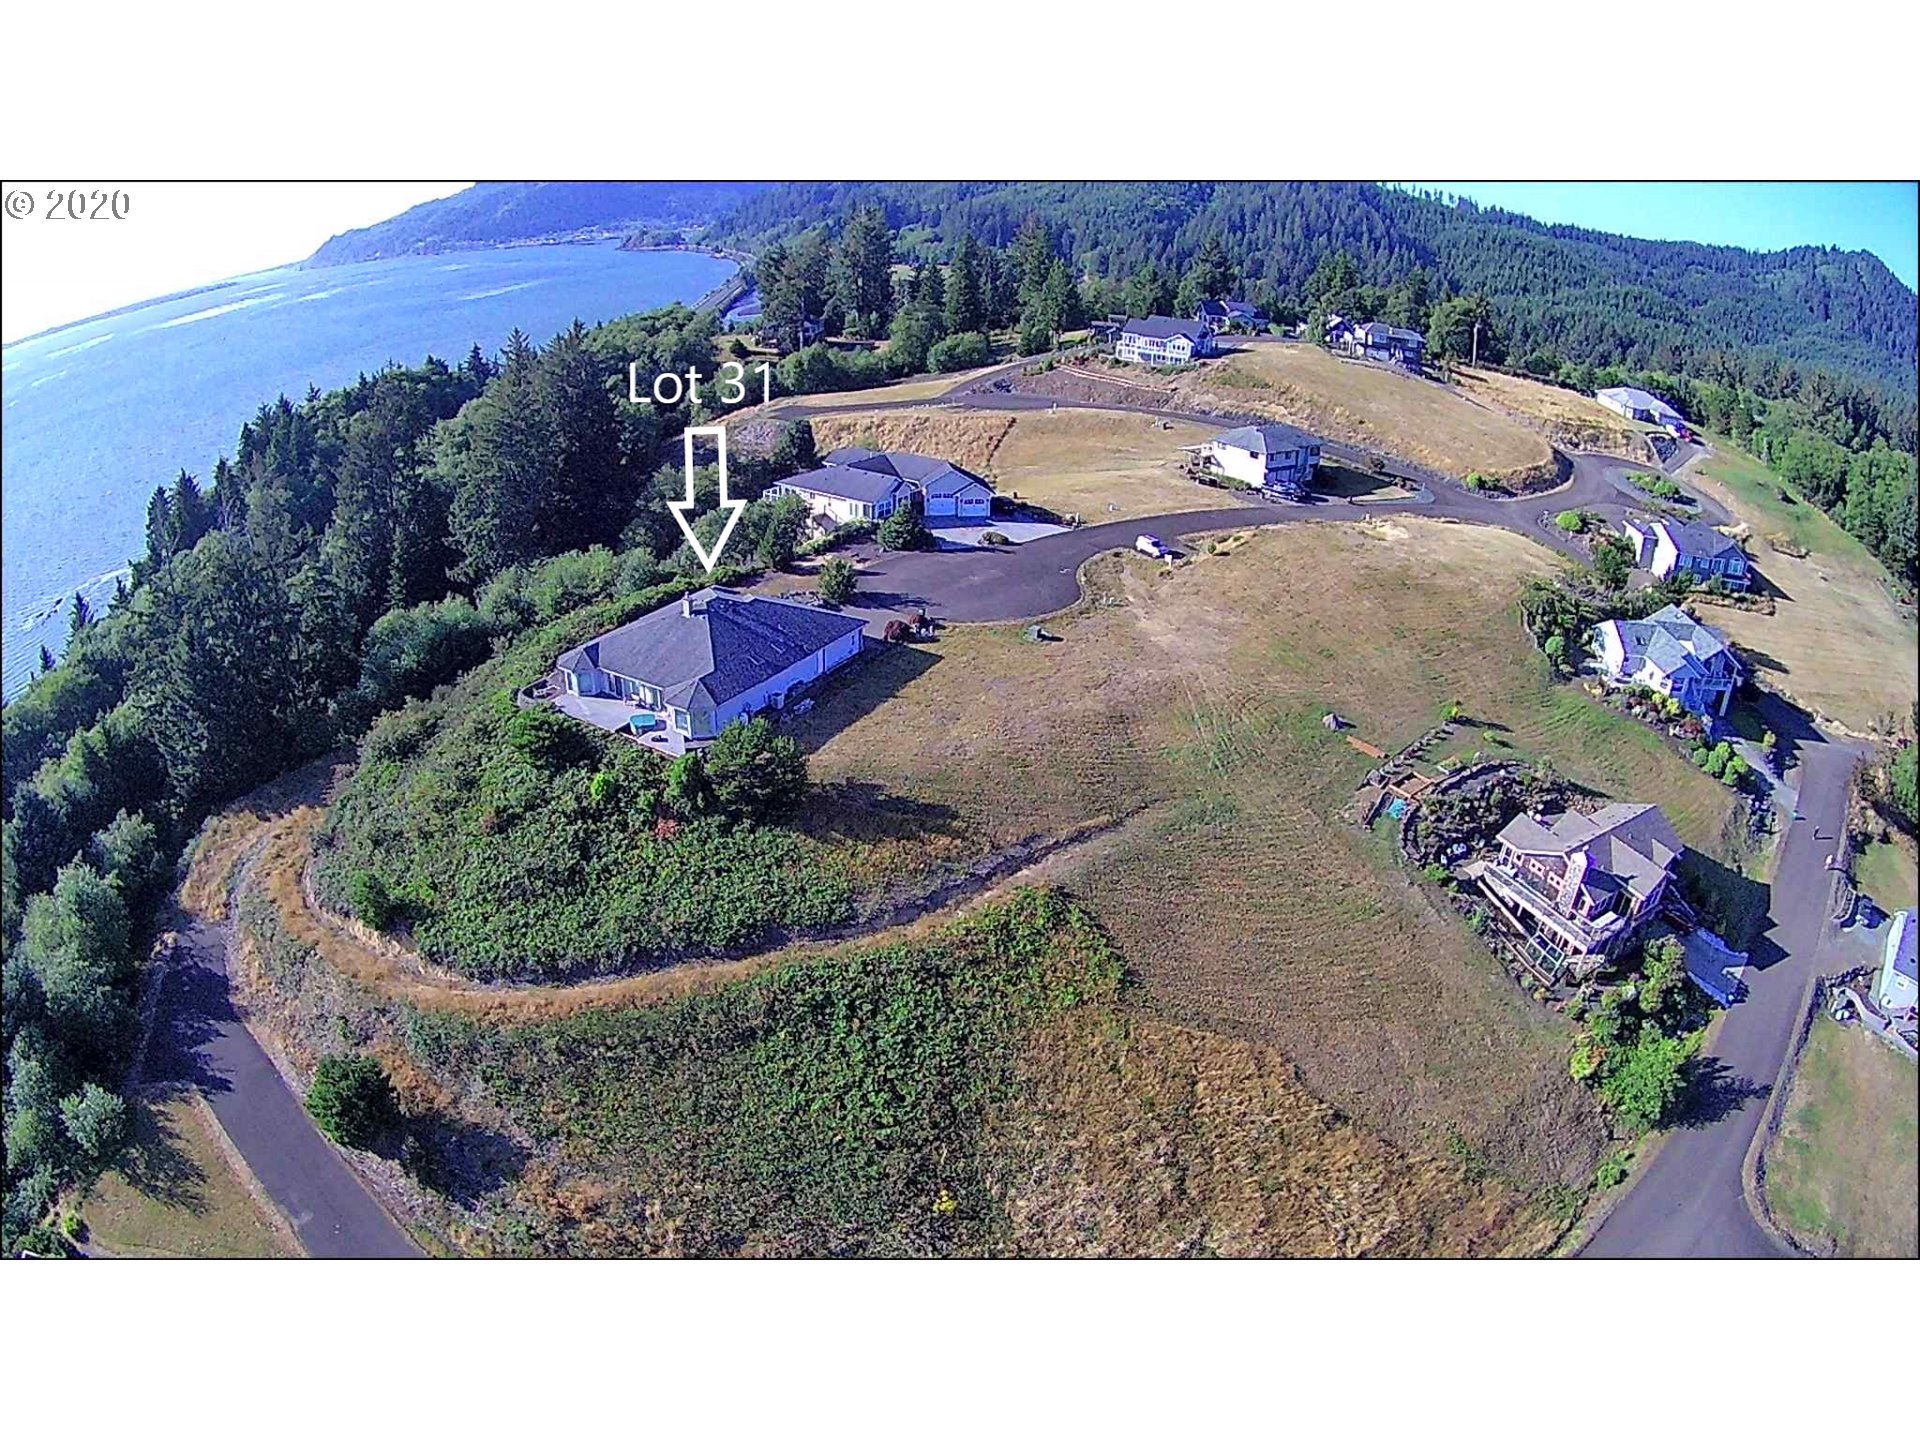 Ocean CT Lot31, Bay City, Oregon 97107, ,Lots And Land,For Sale,Ocean CT Lot31,20506160